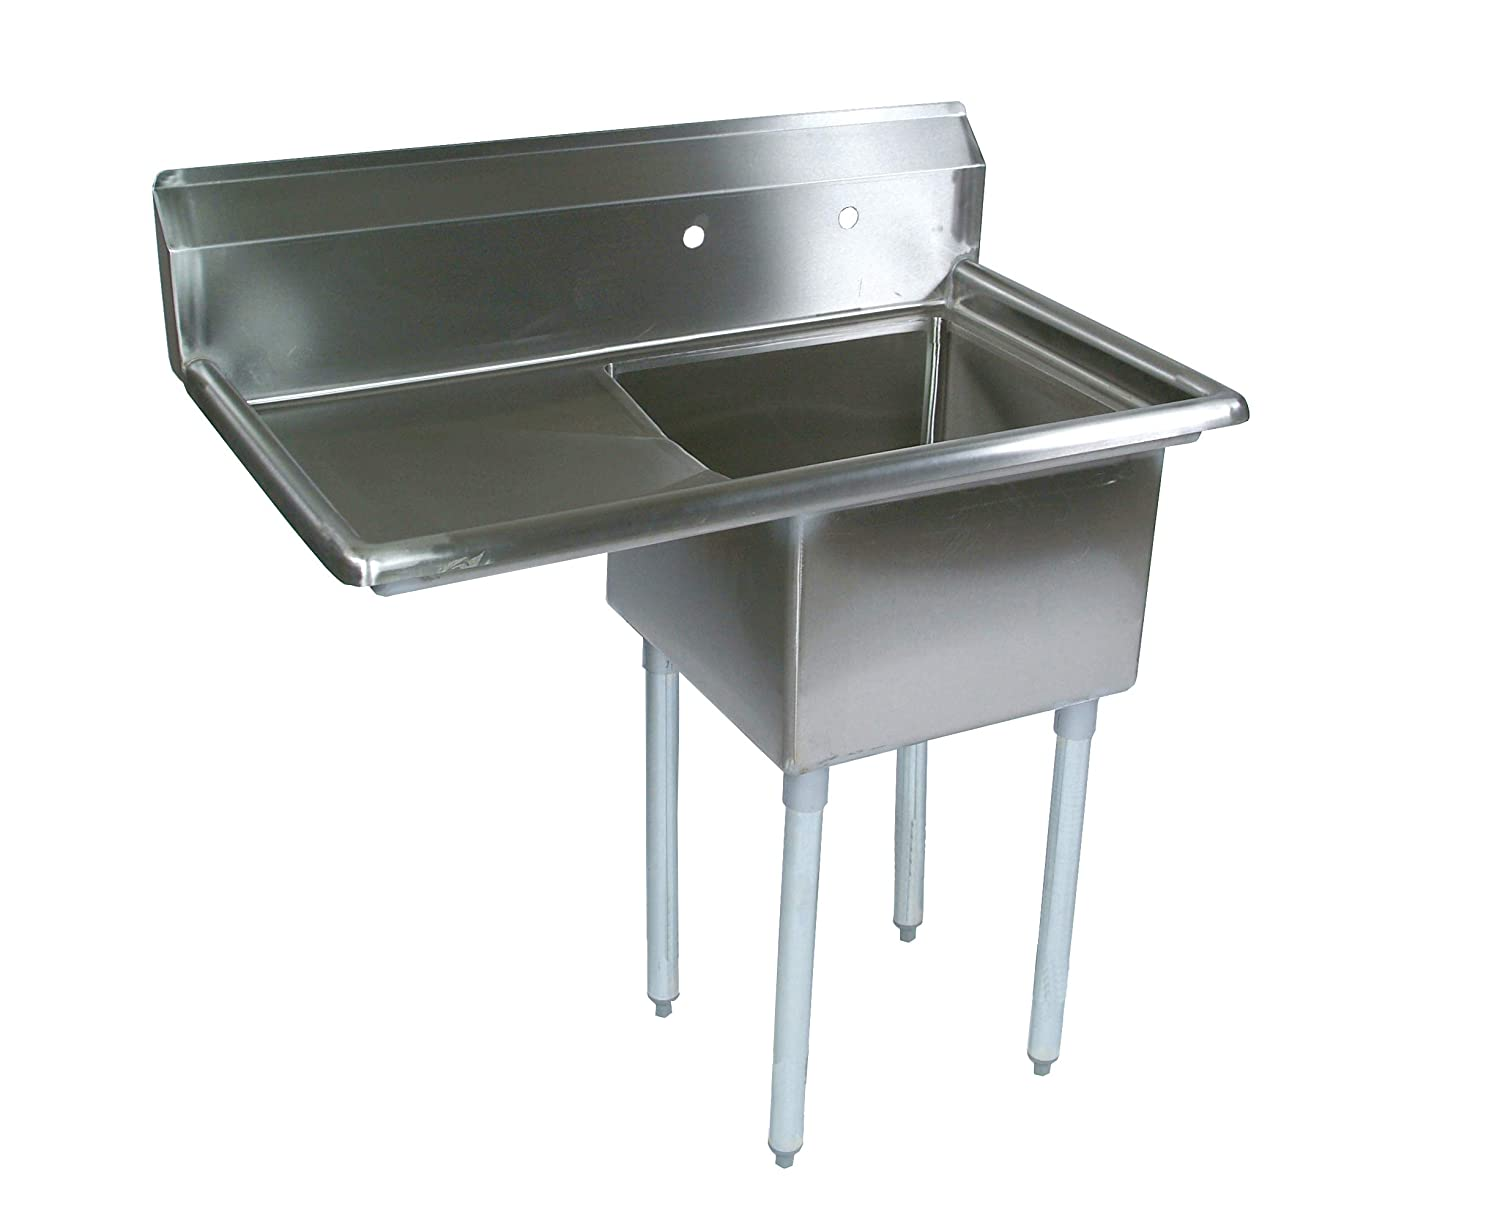 Remarkable John Boos E Series Stainless Steel Sink 12 Deep Bowl 1 Compartment 18 Left Hand Side Drainboard 38 1 2 Length X 23 1 2 Width Nsf Certified Interior Design Ideas Inamawefileorg